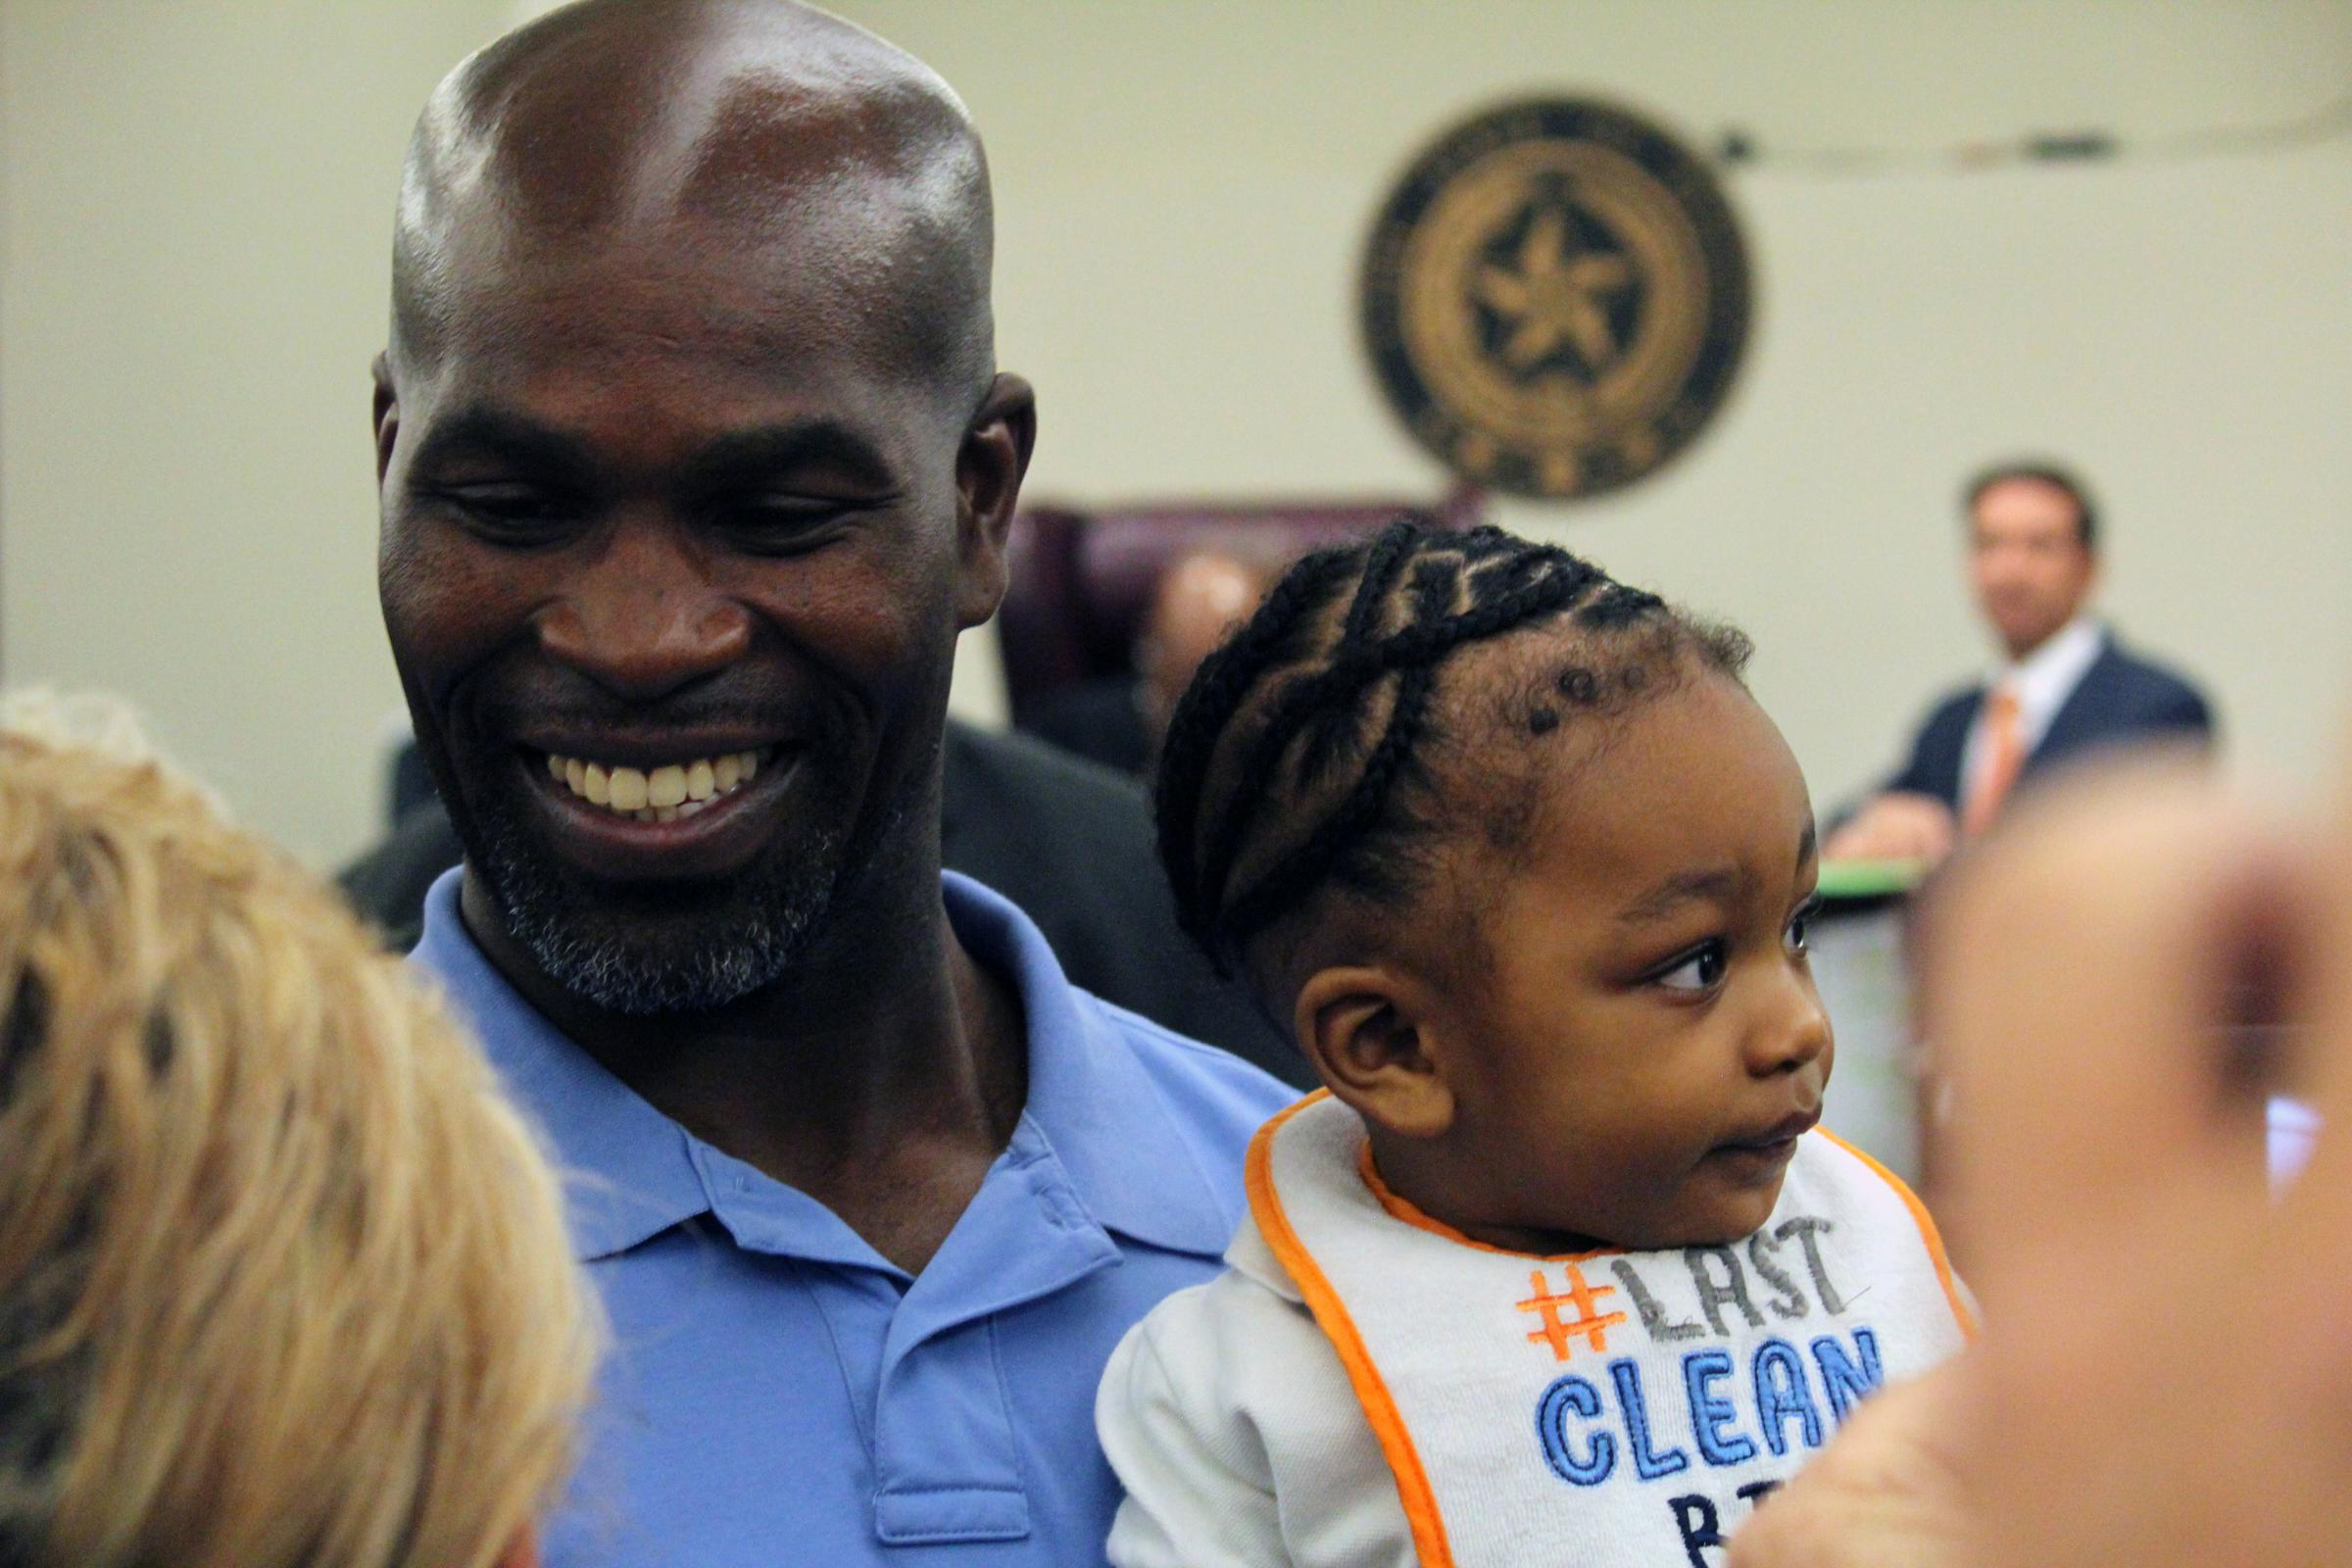 Bedford Man Exonerated After Nearly 20 Years In Prison For